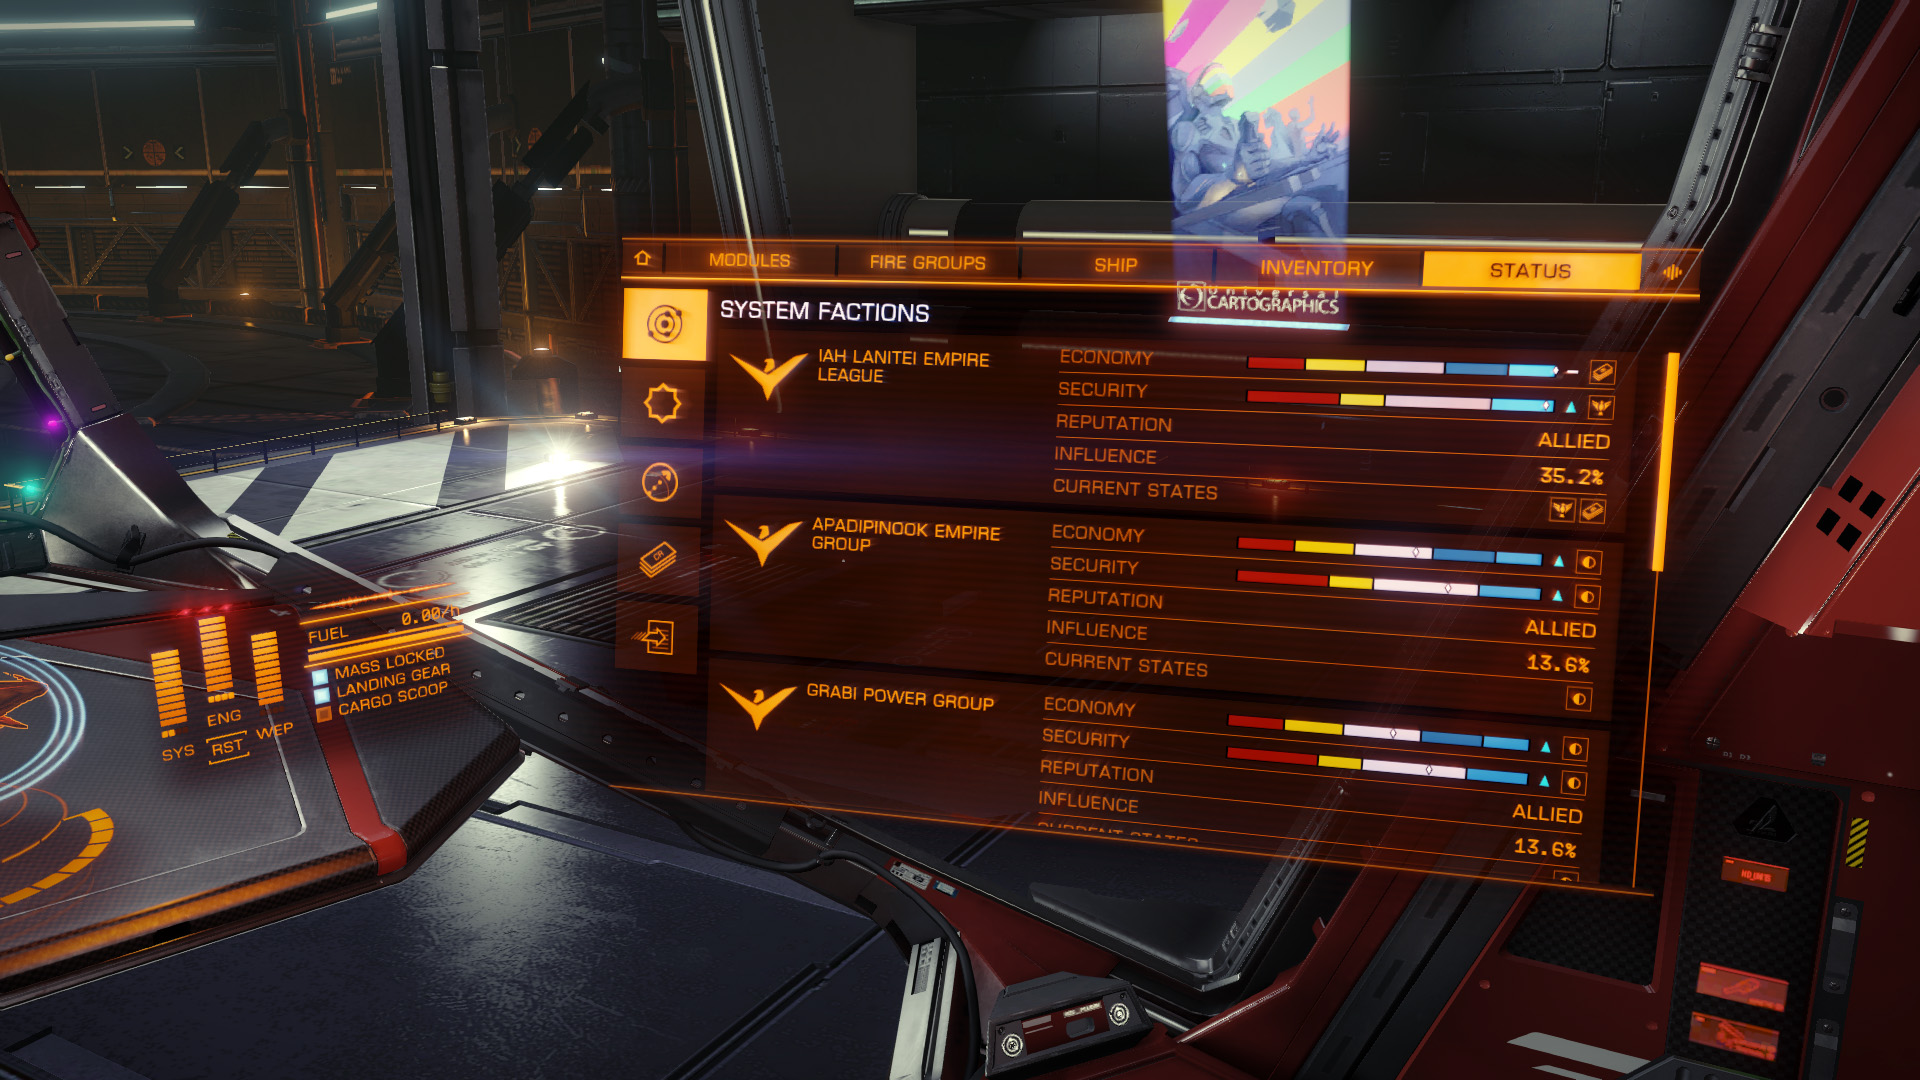 Elite: Dangerous beginner's guide: A screenshot showing where to find info on the standings of system factions